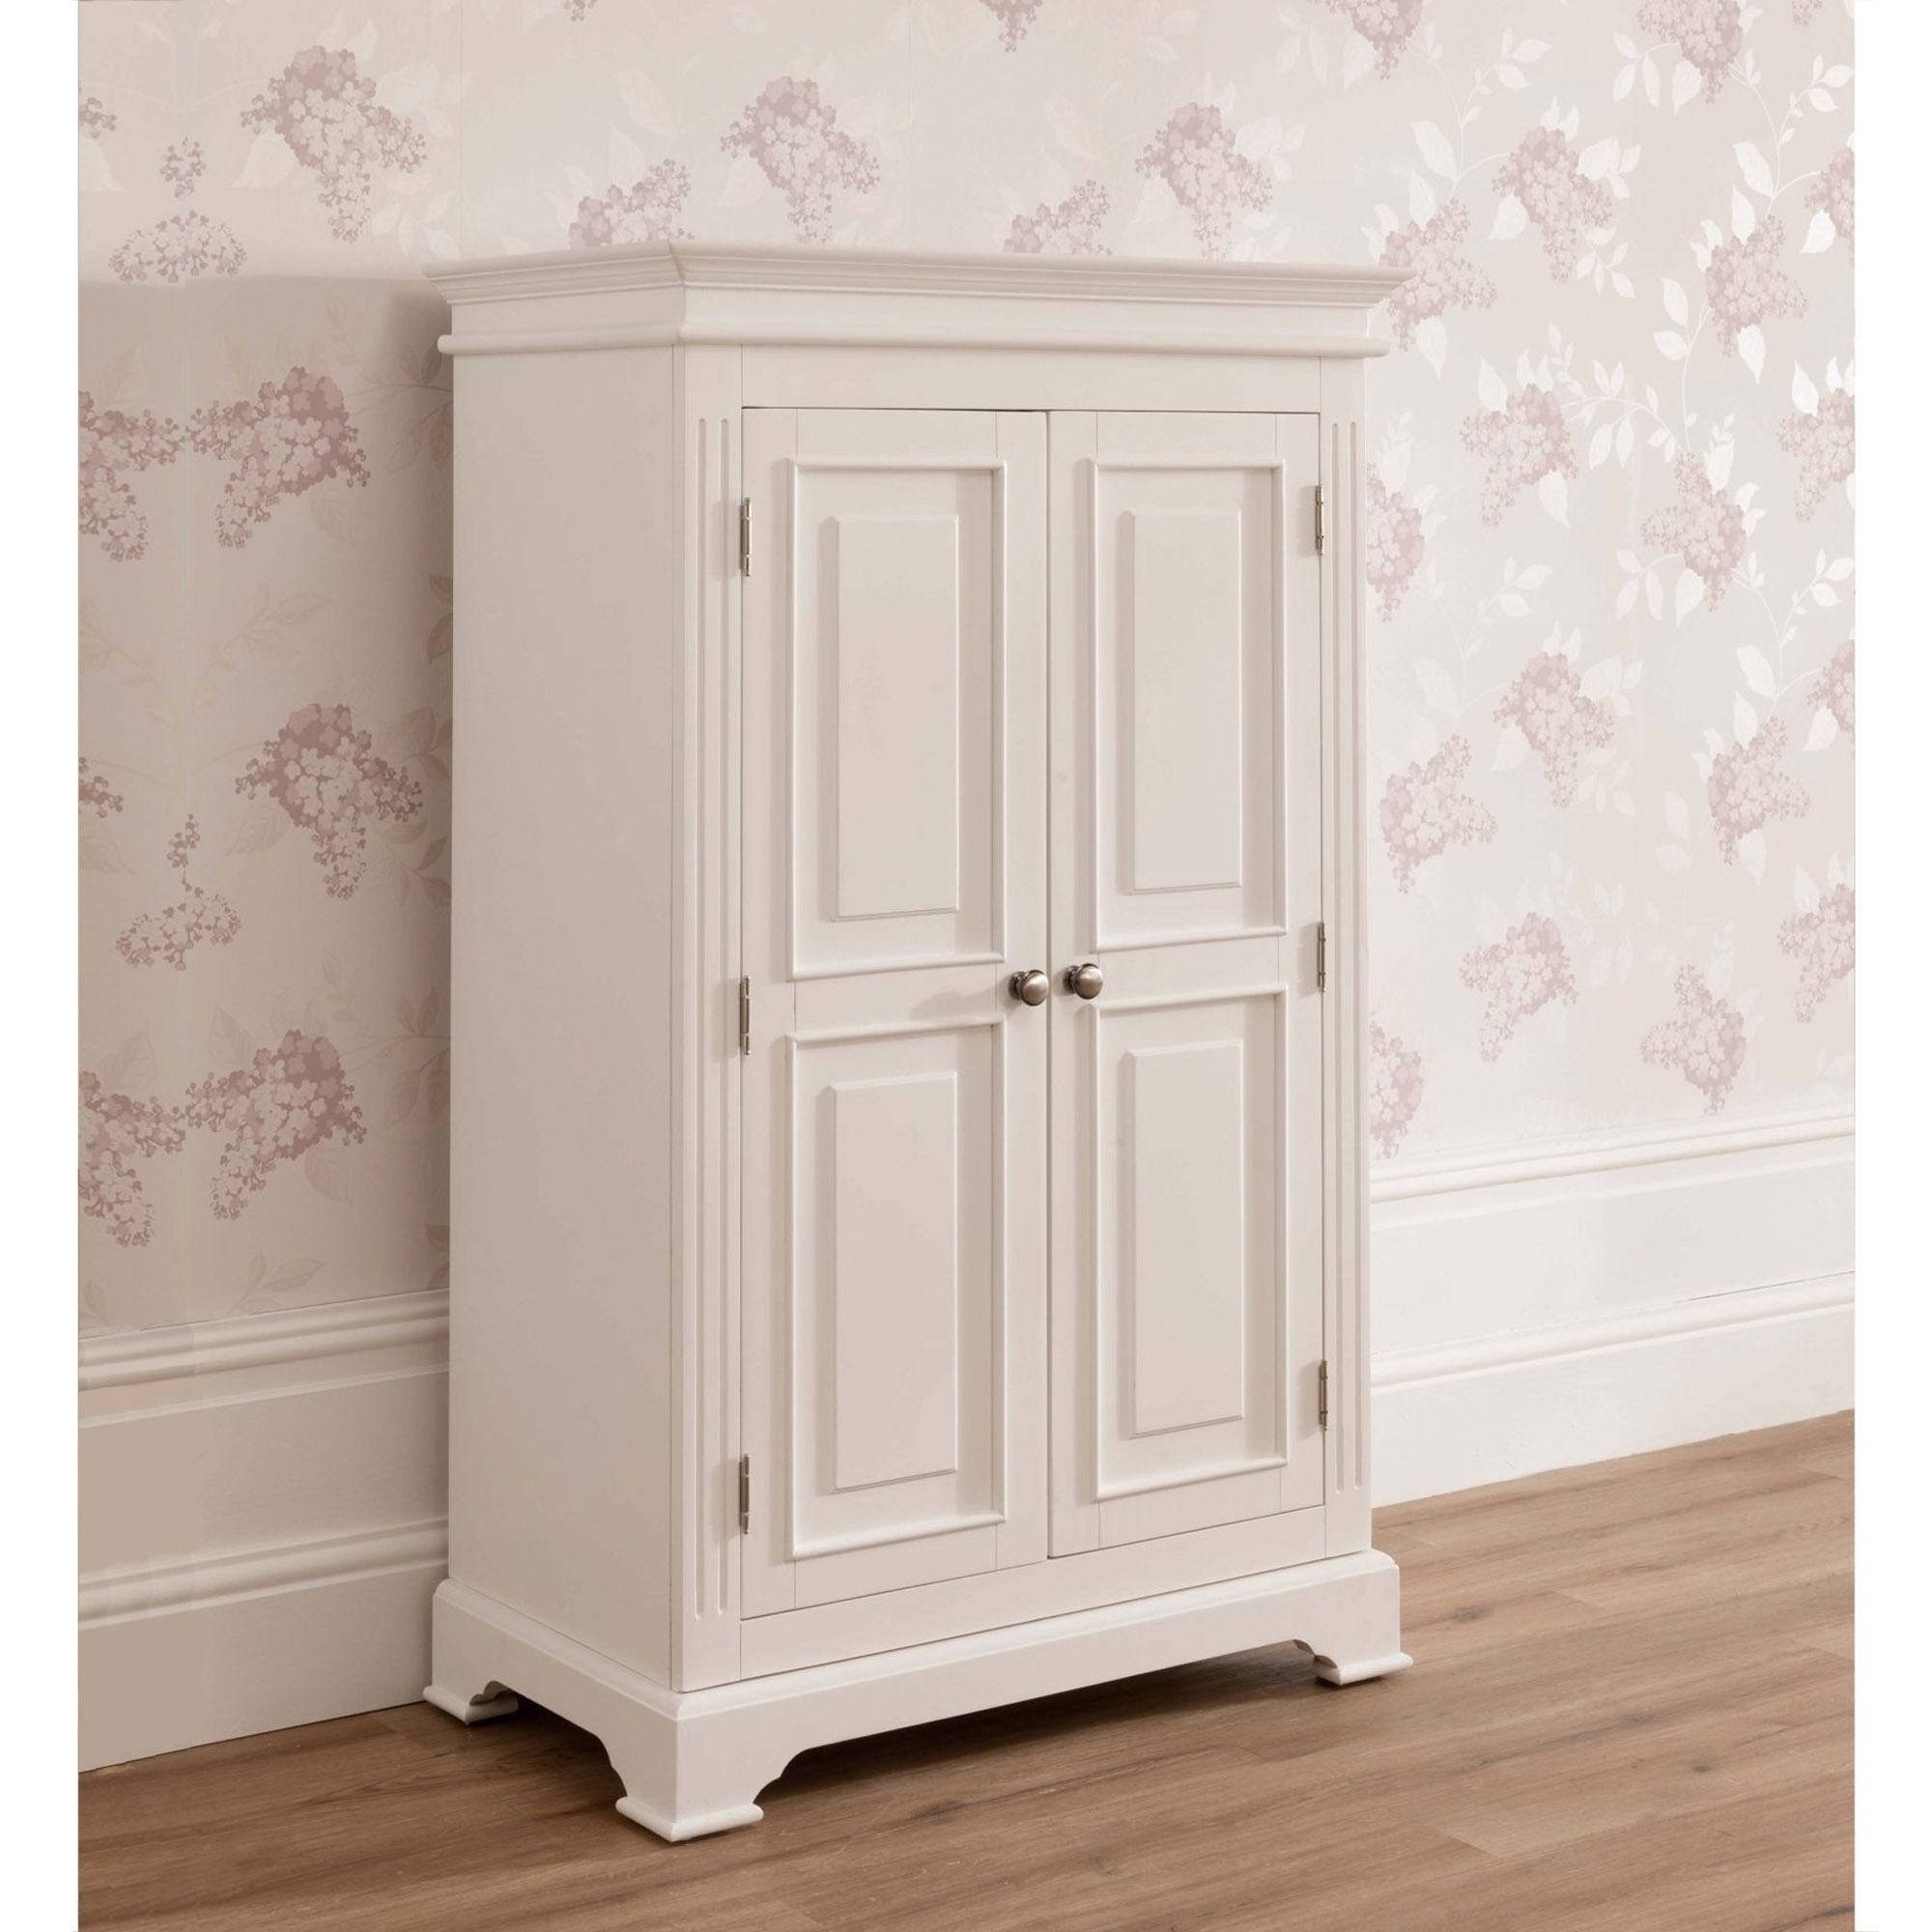 Childrens Tallboy Wardrobes With Latest Sophia Kids Shabby Chic Wardrobe Works Wonderful Alongside Our (View 7 of 15)